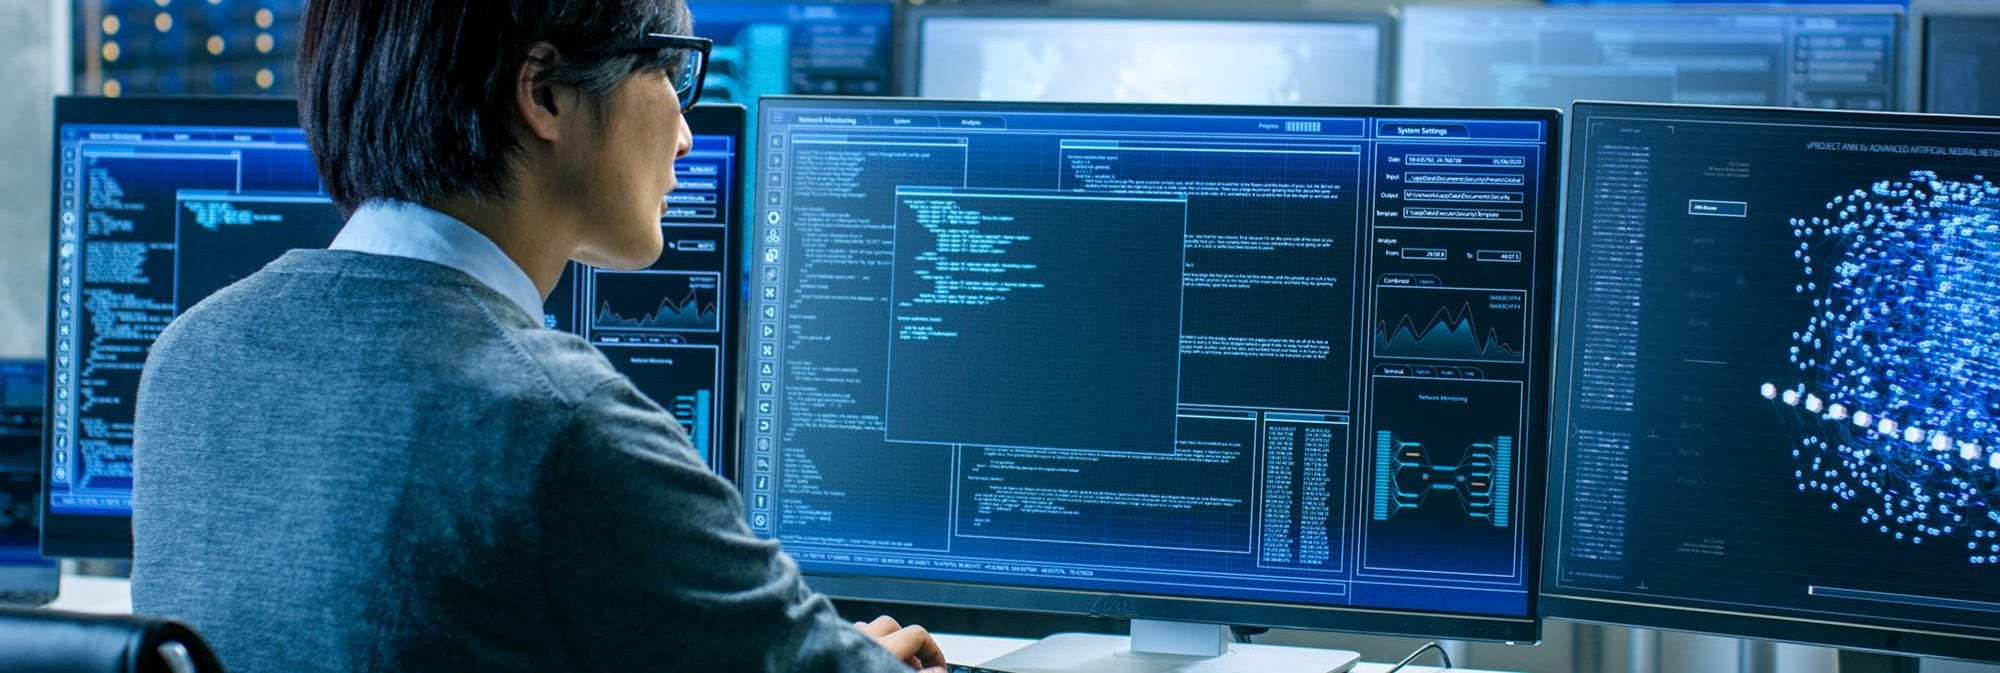 picture of a young man doing network security on computers